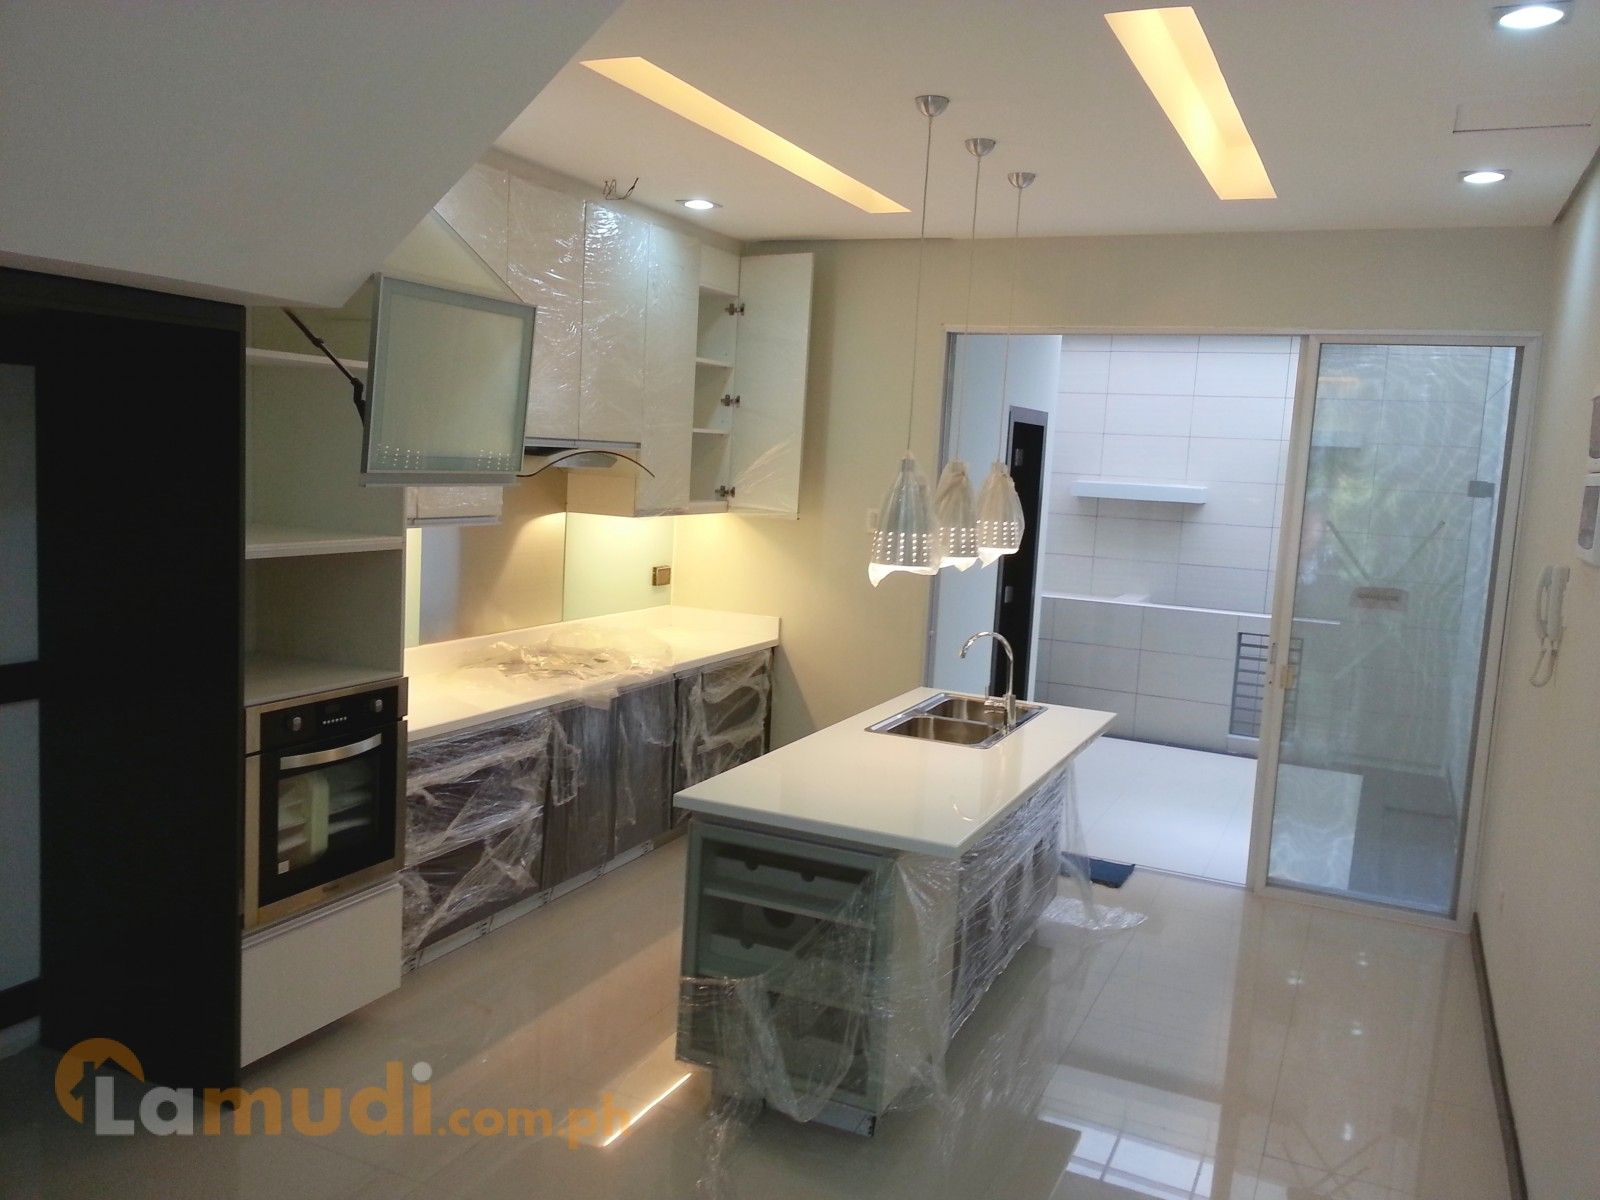 Townhouse In Project 8 Congressional Ave Quezon City House Interior Townhouse Interior And Exterior